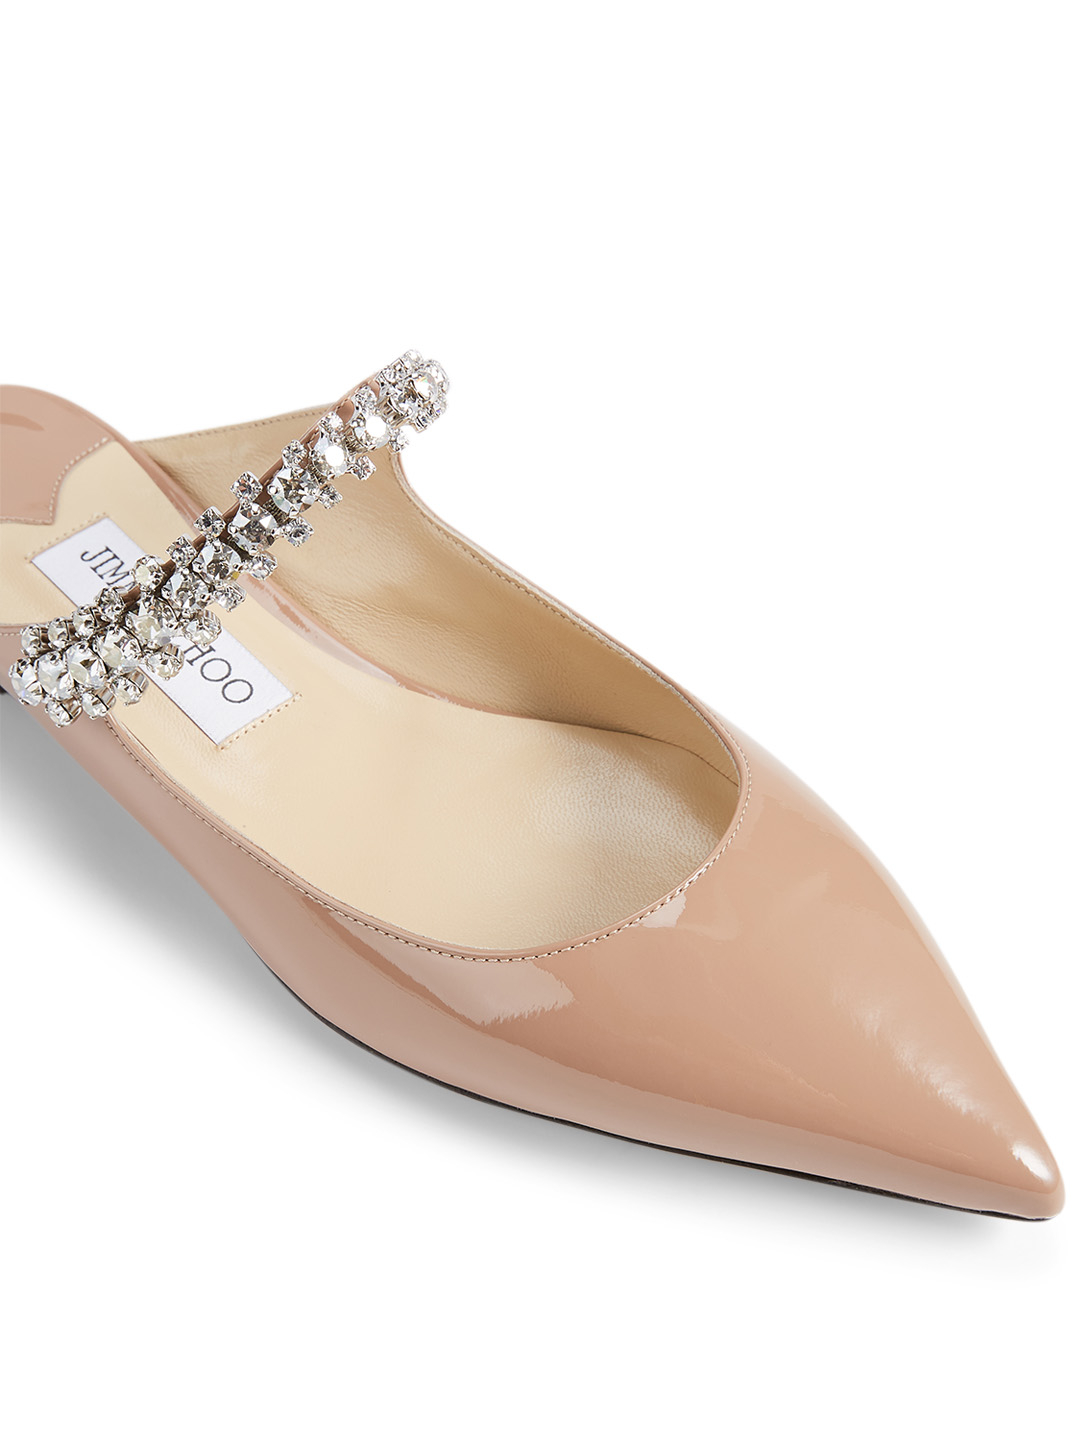 JIMMY CHOO Bing Patent Leather Flat Mules With Crystal Strap Women's Pink